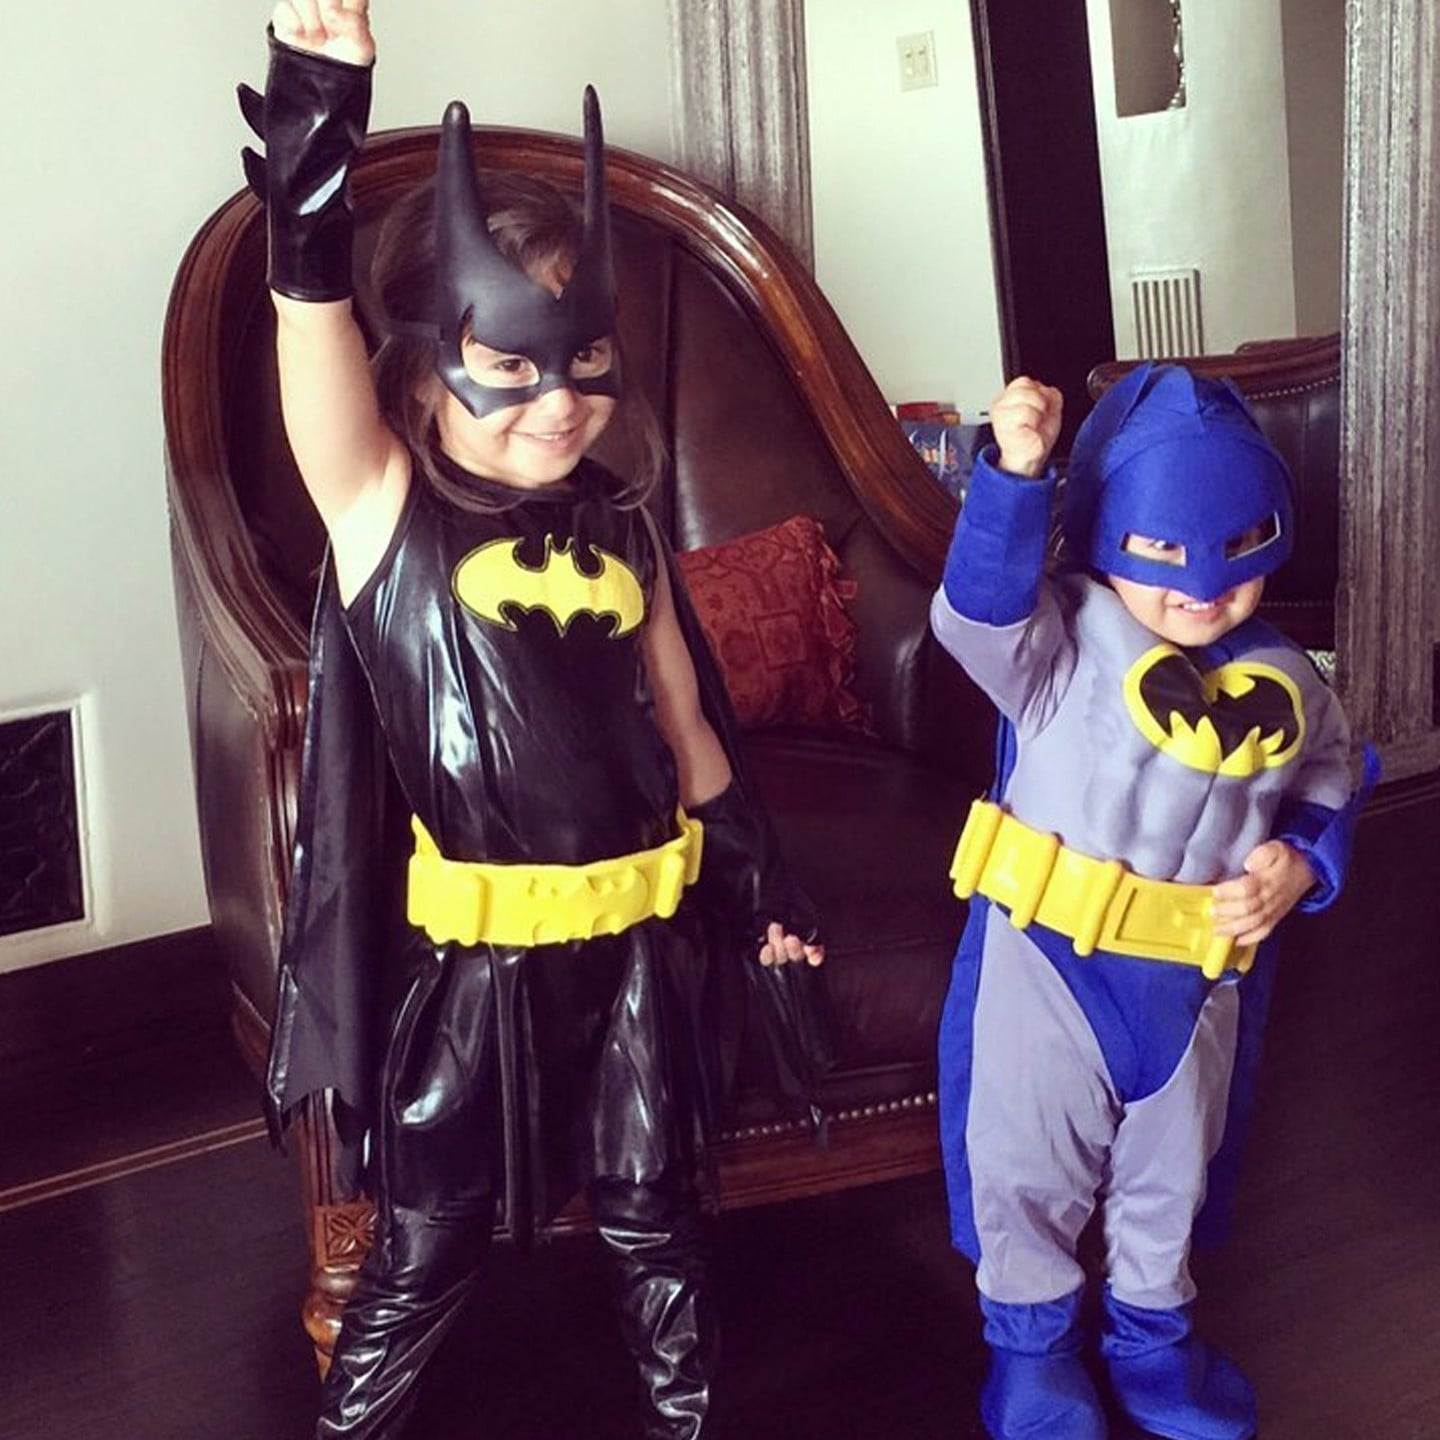 Mario Lopezu0027s Kids Wearing Superhero Costumes Instagram | POPSUGAR Latina : kids hero costume  - Germanpascual.Com